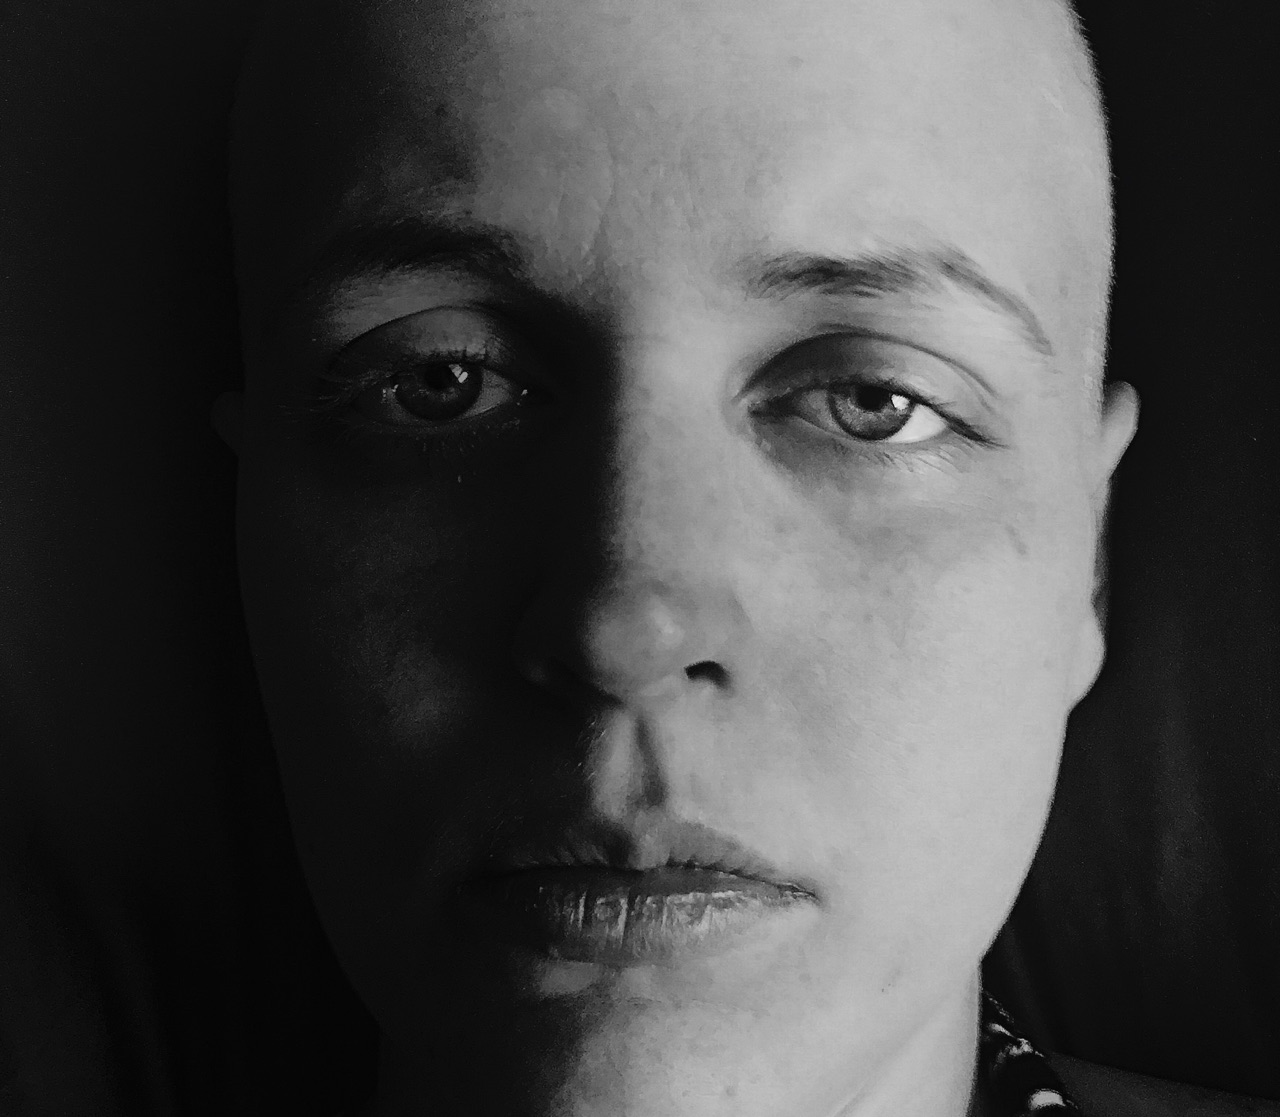 The effects of the chemo had taken their toll and her face had changed due to the drug combination she was being given. One thing I knew was that Faye was stronger than she thought and kept wading through the pain, however hard it had become.